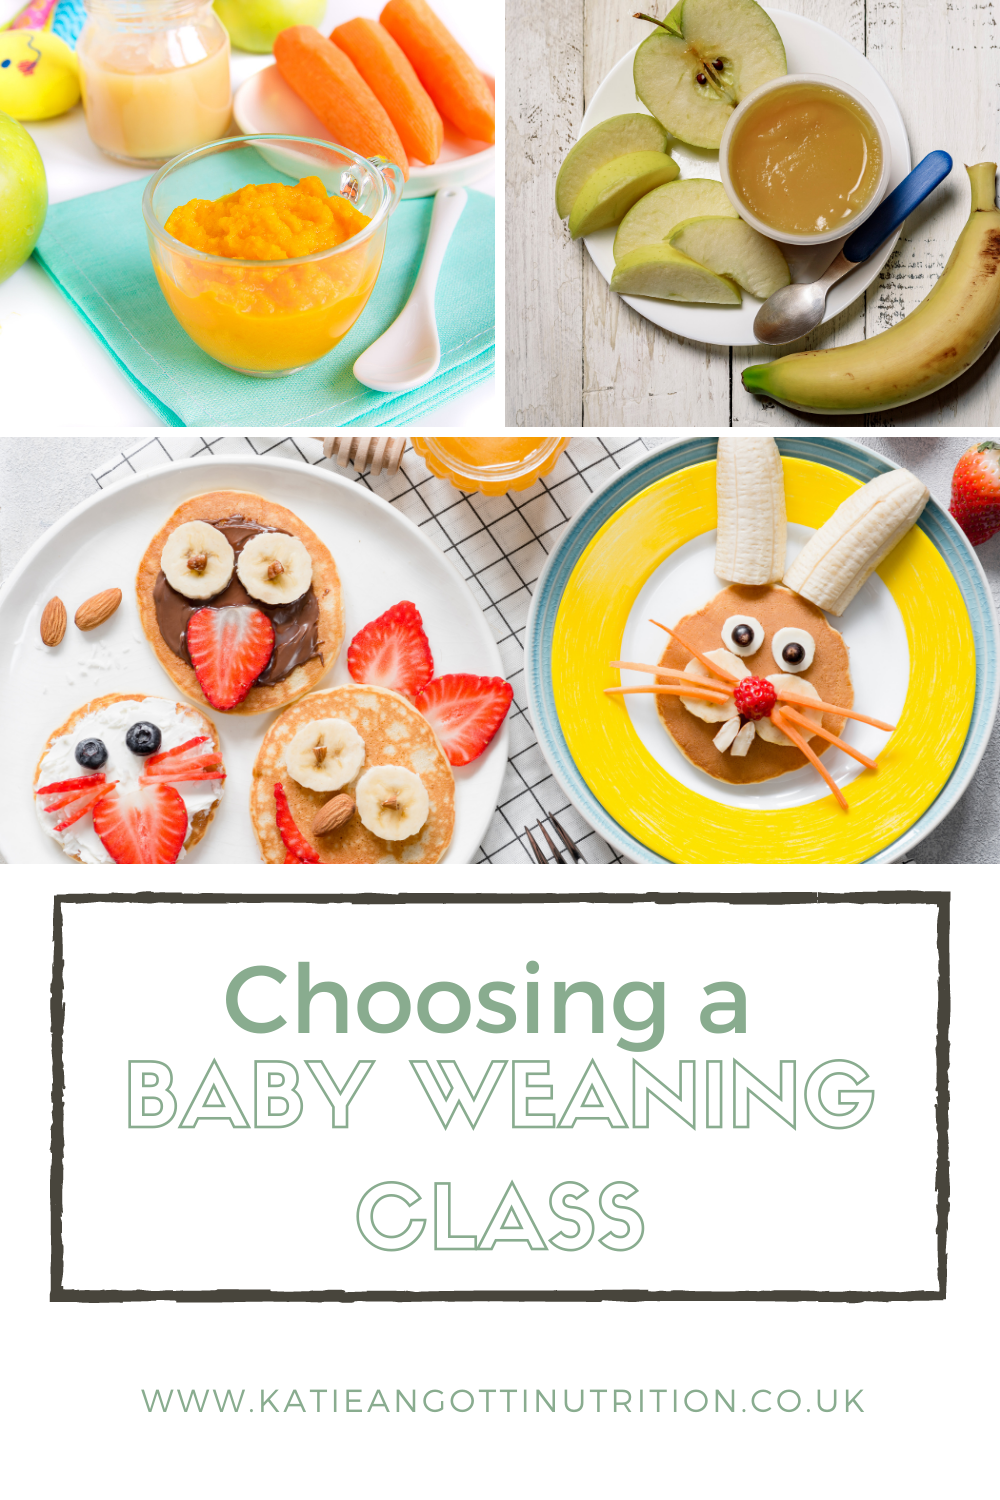 Choosing a baby weaning class with a child nutritionist home made baby food in bowls and baby led weaning finger foods